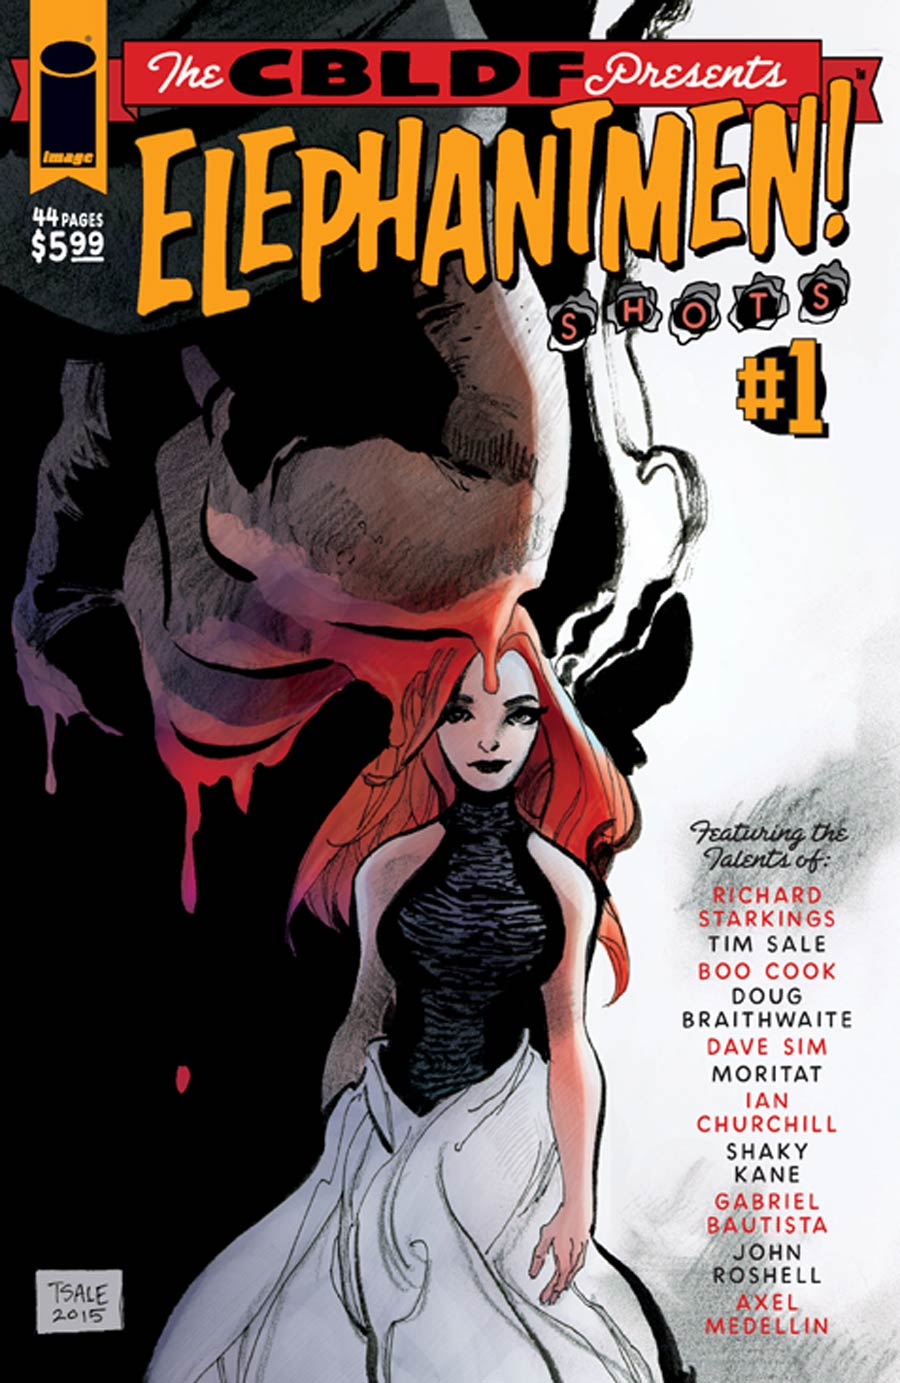 CBLDF Presents Elephantmen Shots #1 Cover B Variant Tim Sale & Boo Cook Cover